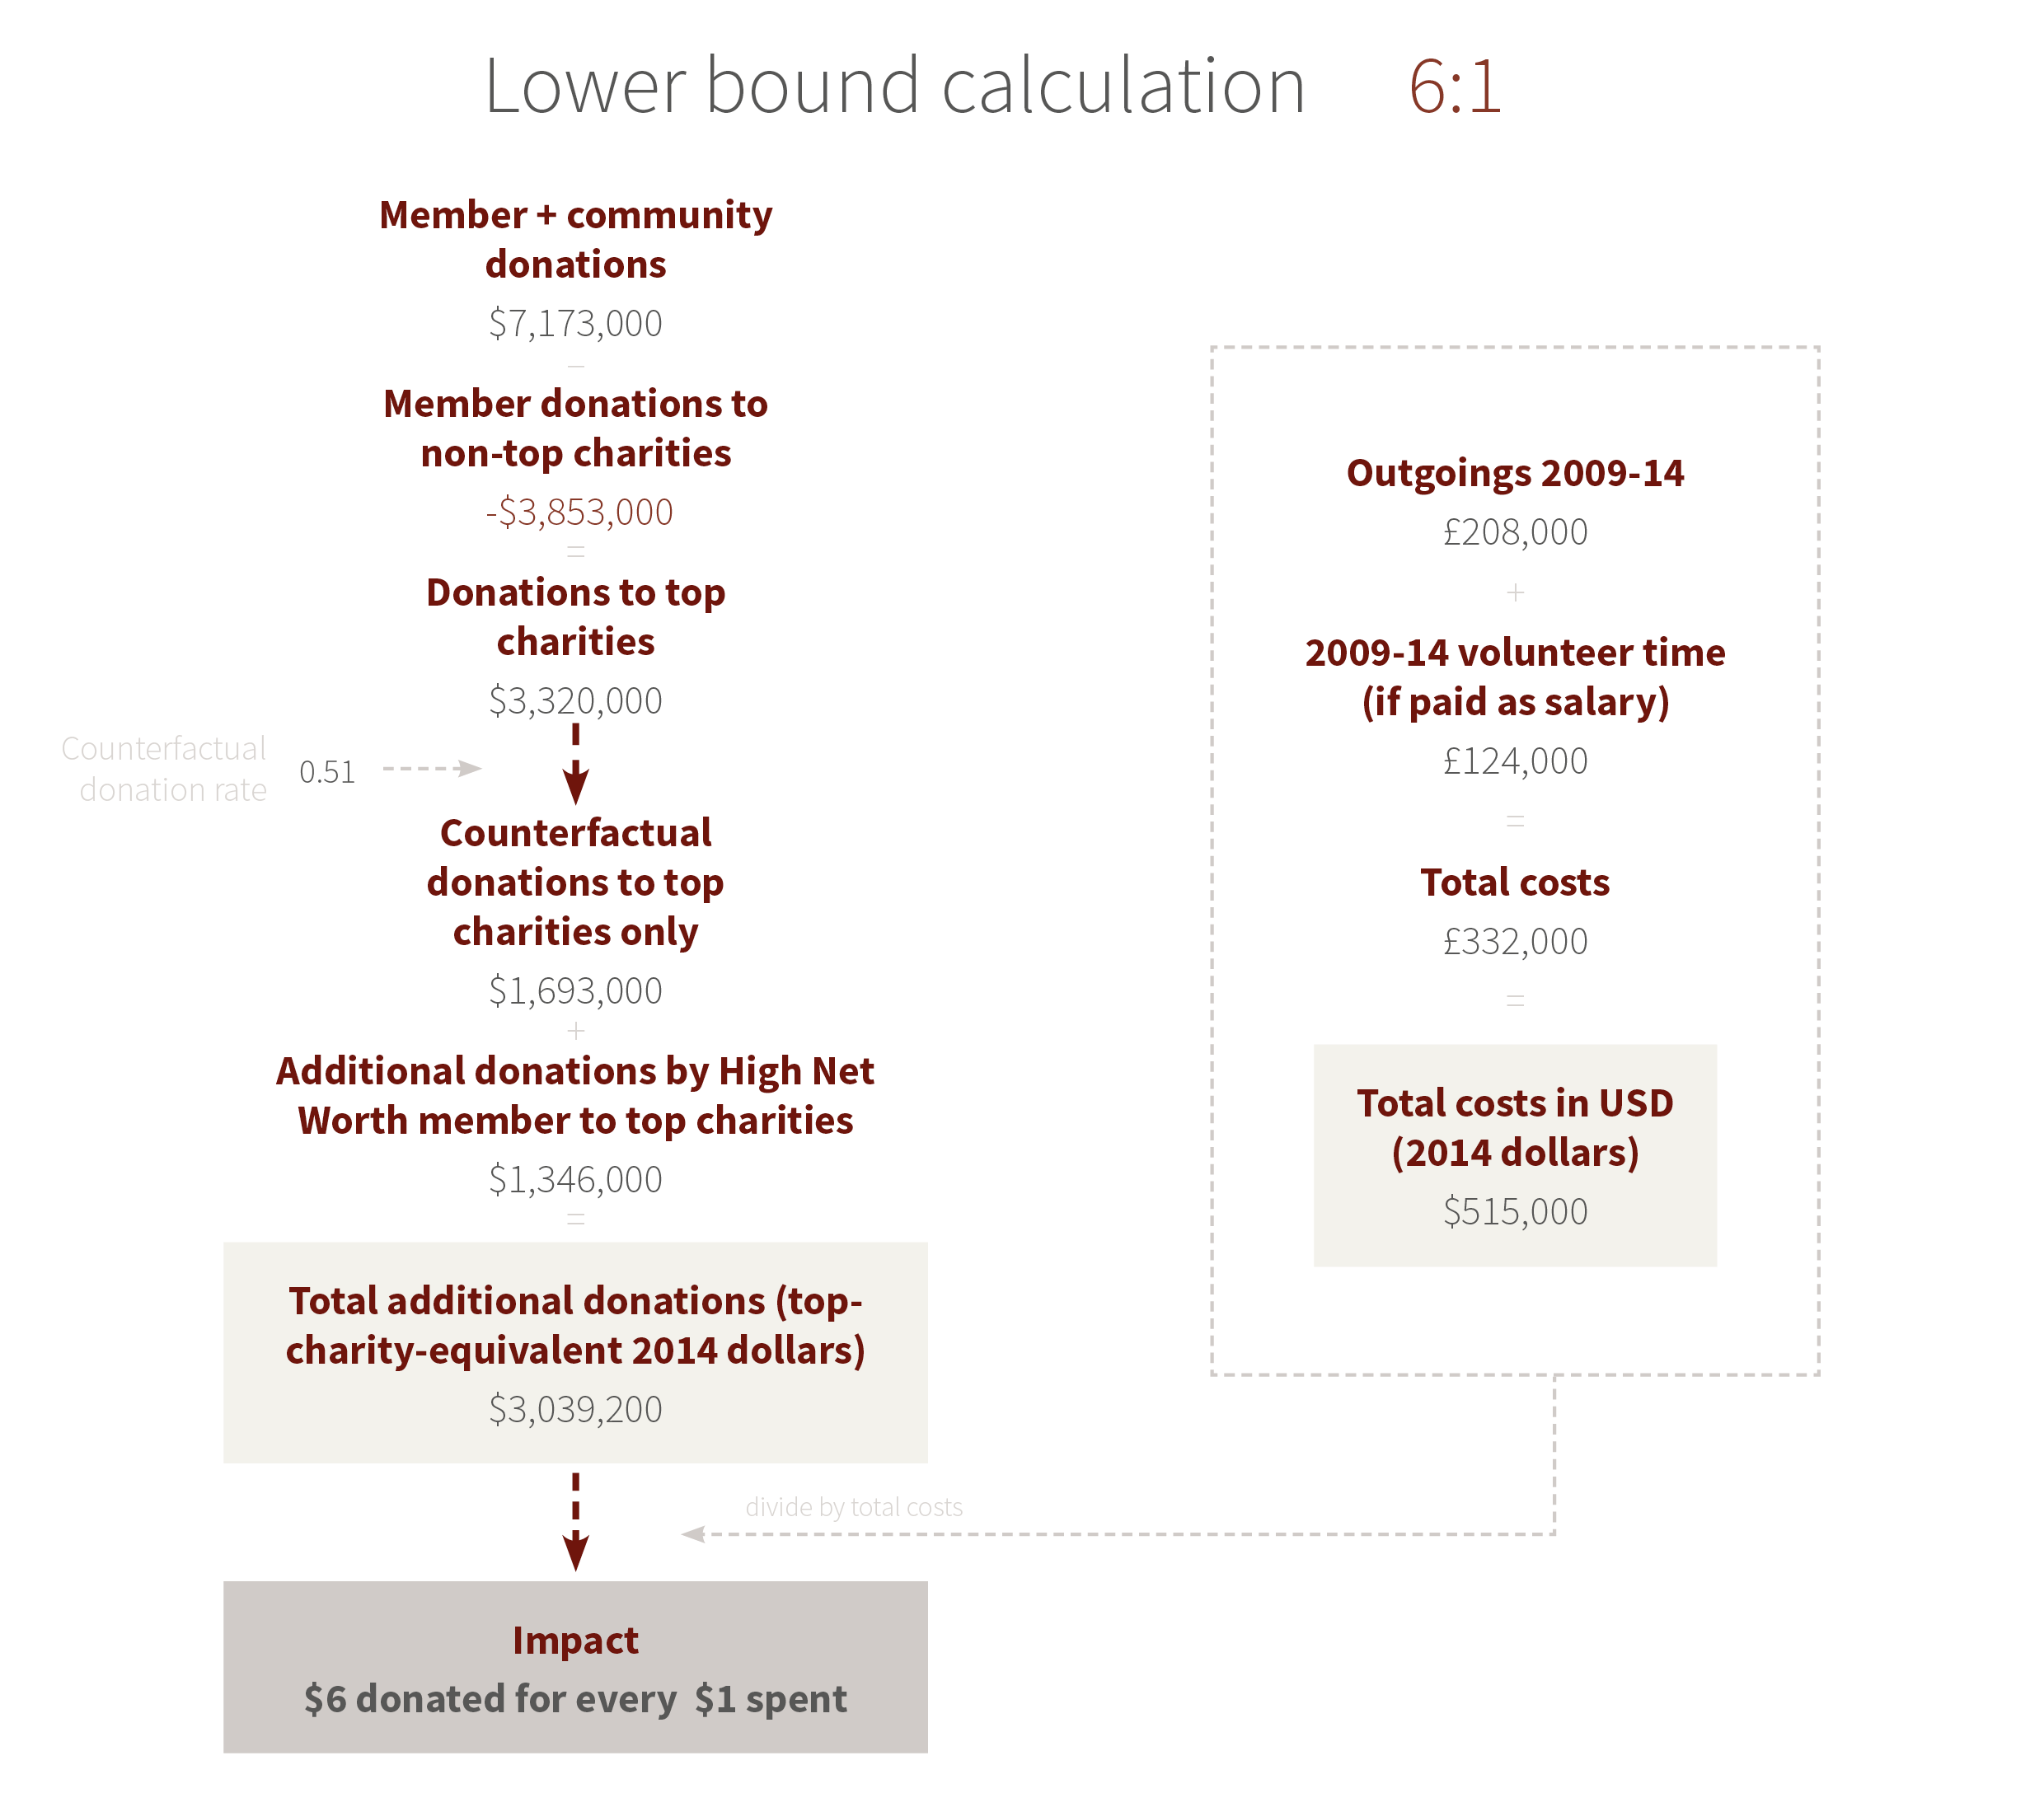 Impact Calculation Flowchart - Lower Bound Calculation (6:1)